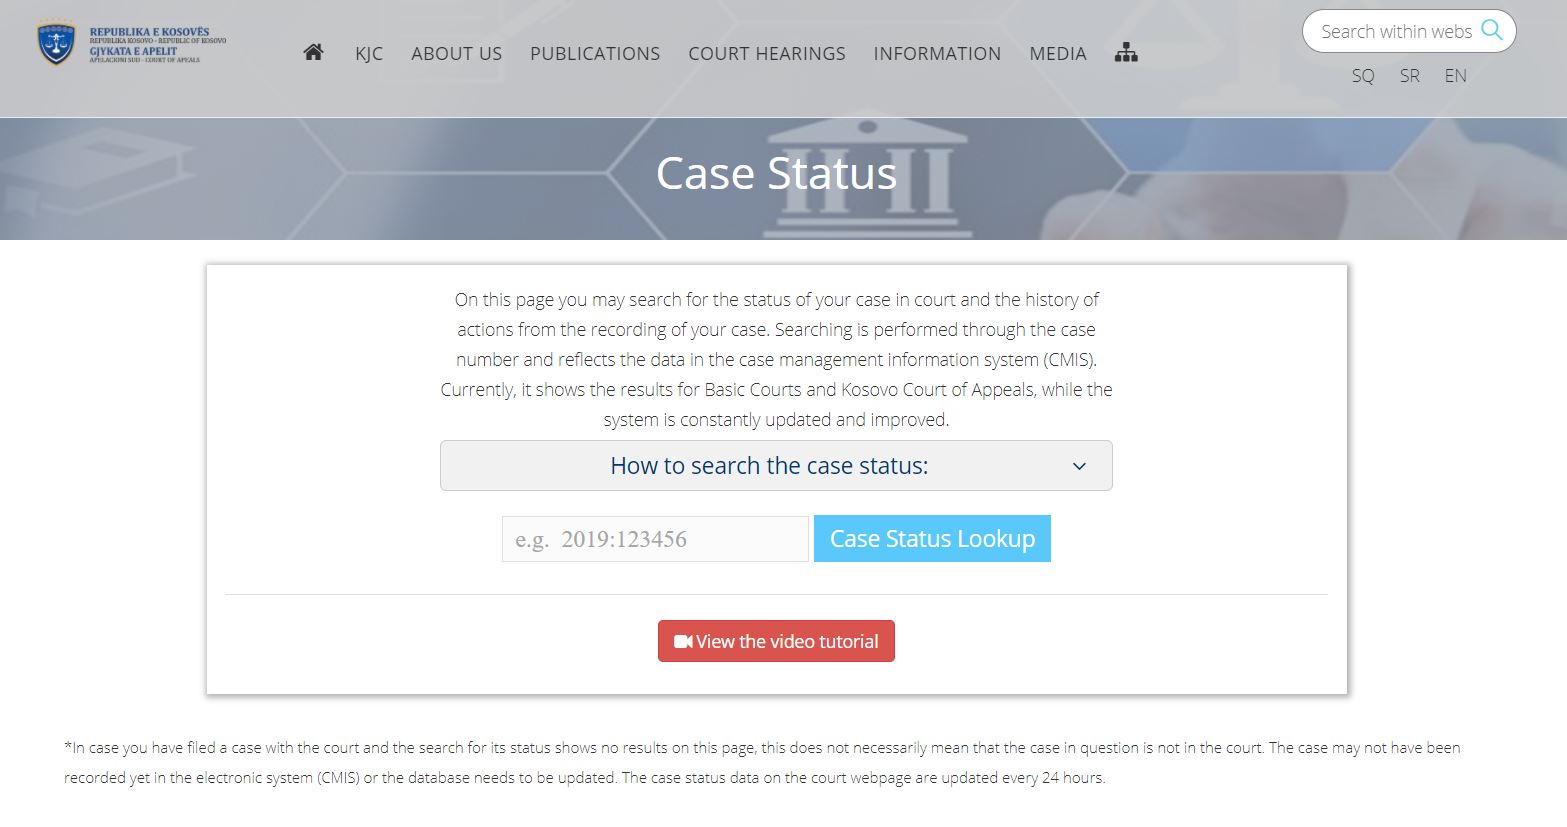 USAID's JSSP in Kosovo Helps with Online Access to Court Case Status